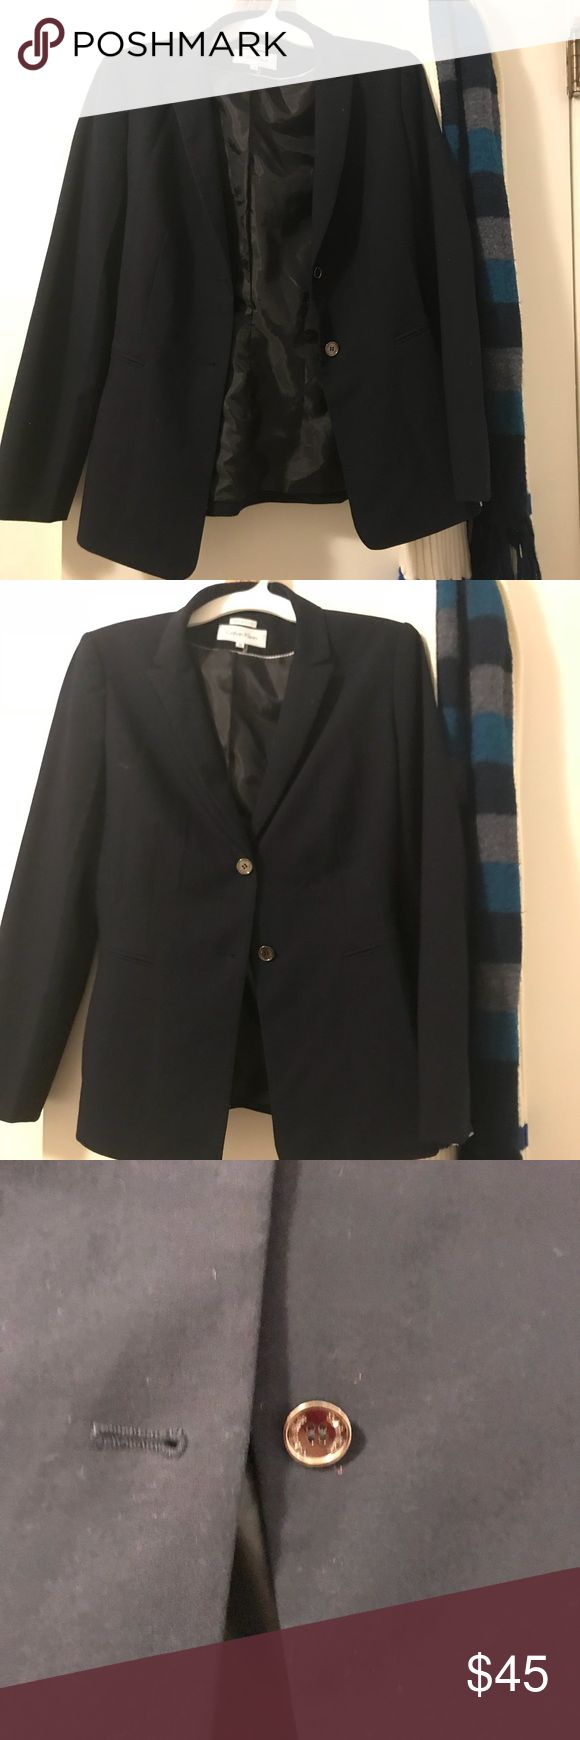 Calvin Klein Navy Blue Blazer Size 10 Totally adorable and super professional blazer. It's wonderful quality and stretches so it fits well. It is slimming so you'll look like on fleek in the office. It's cotton and spandex. It's minimally worn. Would keep but I have one just like it and I don't need two! I recommend this for anyone starting a job or wanting to move up the corporate ladder! Price is totally negotiable Calvin Klein Jackets & Coats Blazers